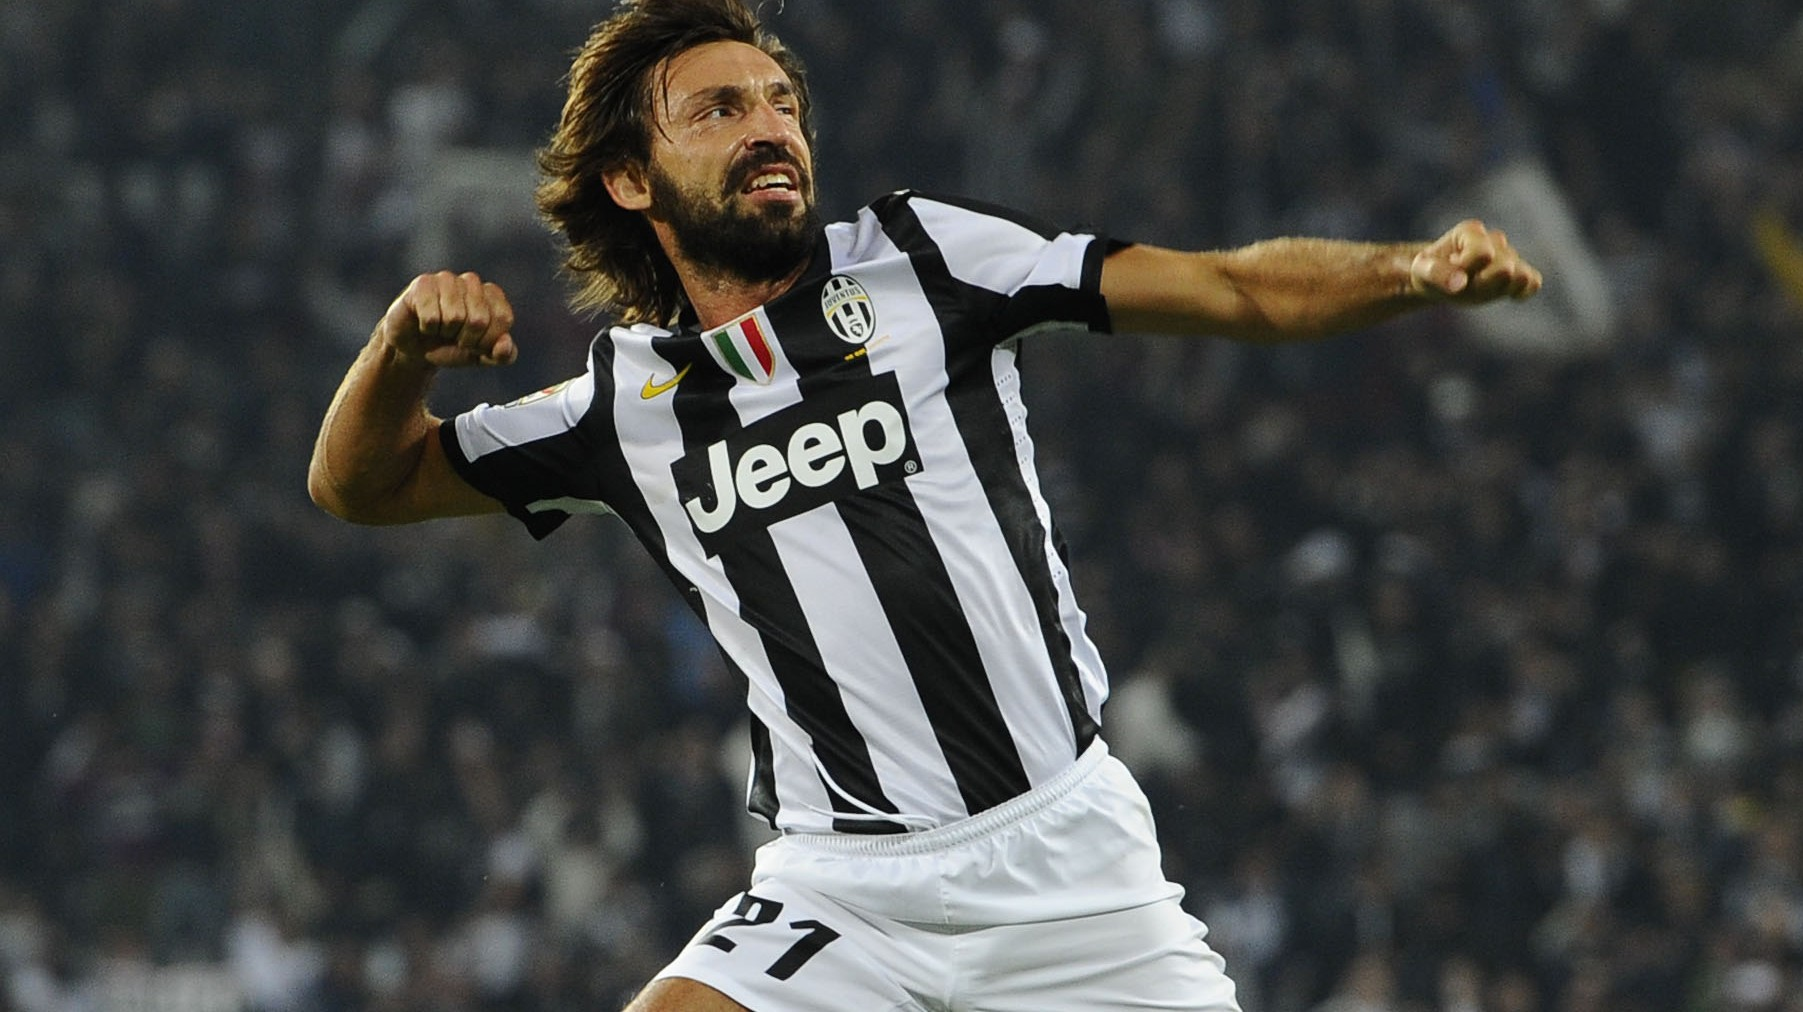 Andrea Pirlo Celebration 3